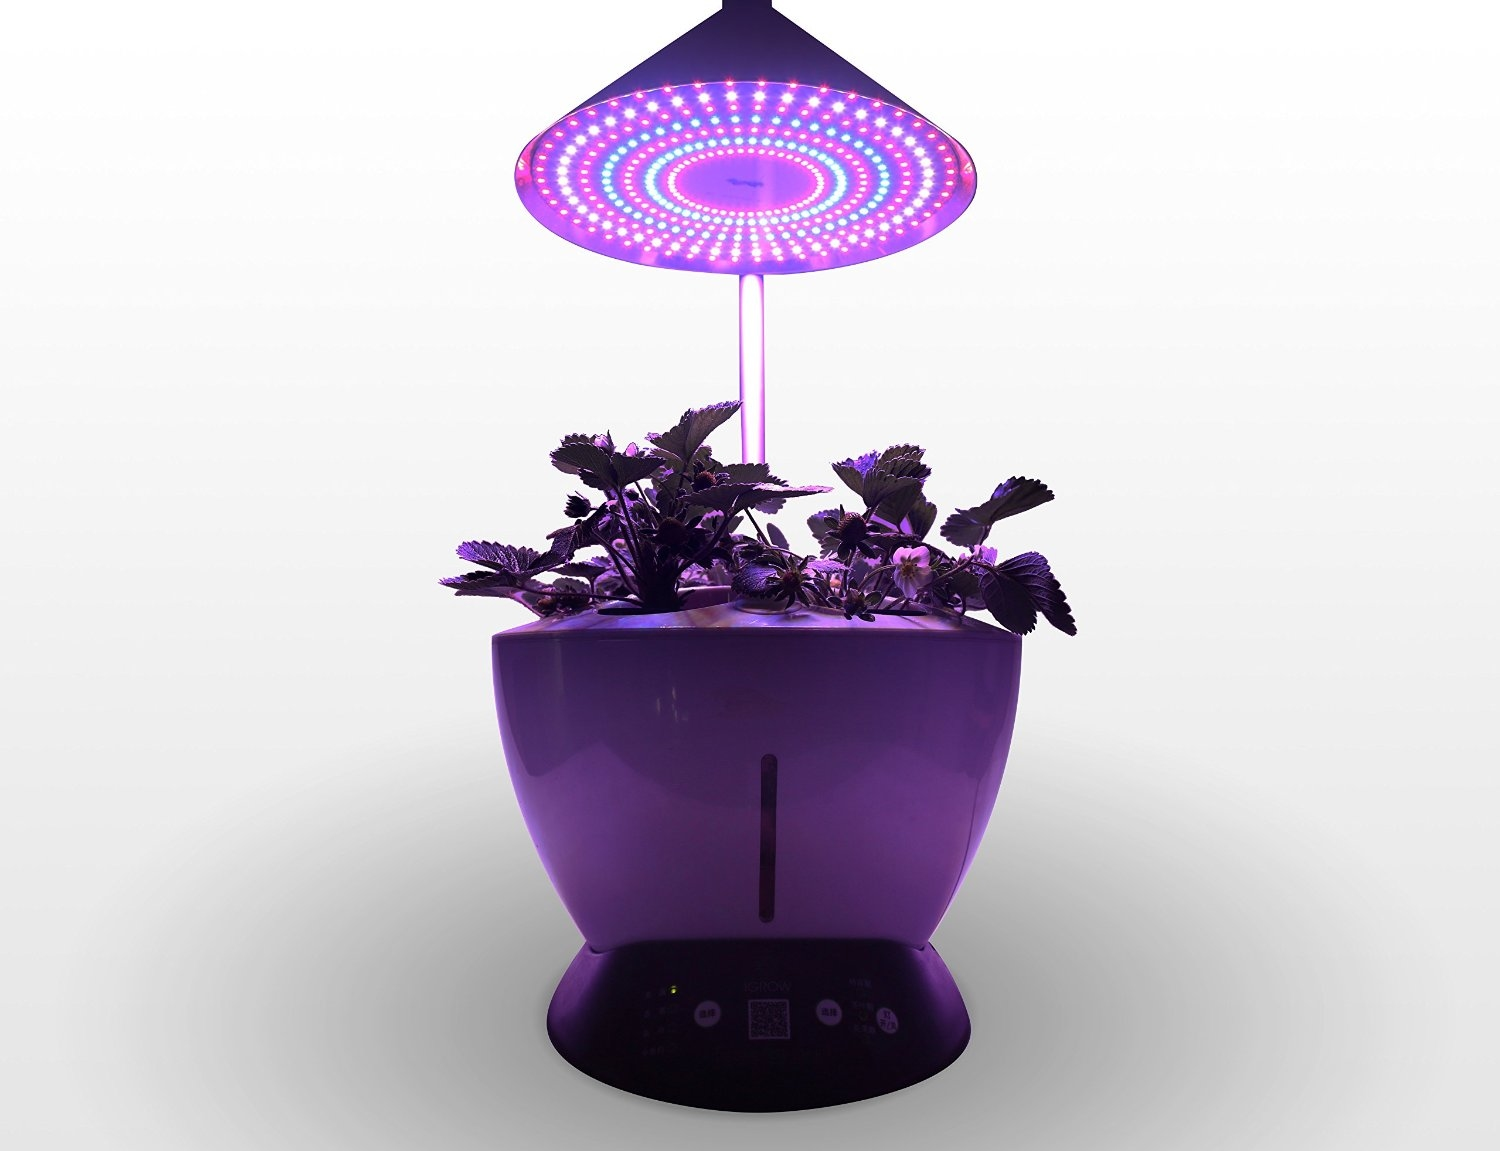 Led Verlichting Growshop Urbangreen I Grow 6 Led Wit